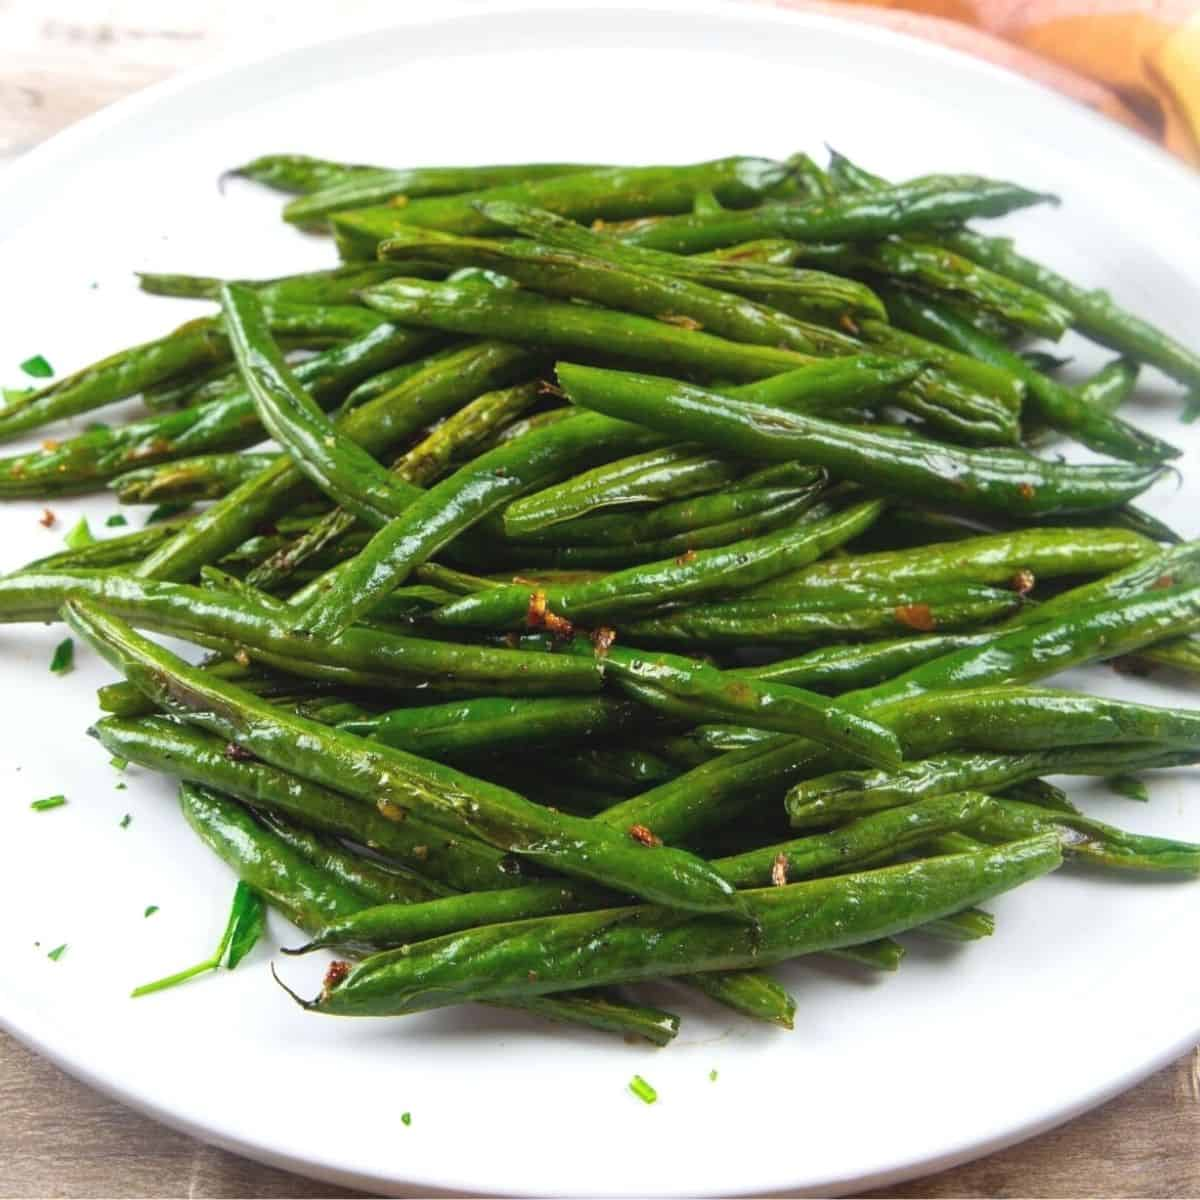 A white plate loaded with green beans that have been roasted.